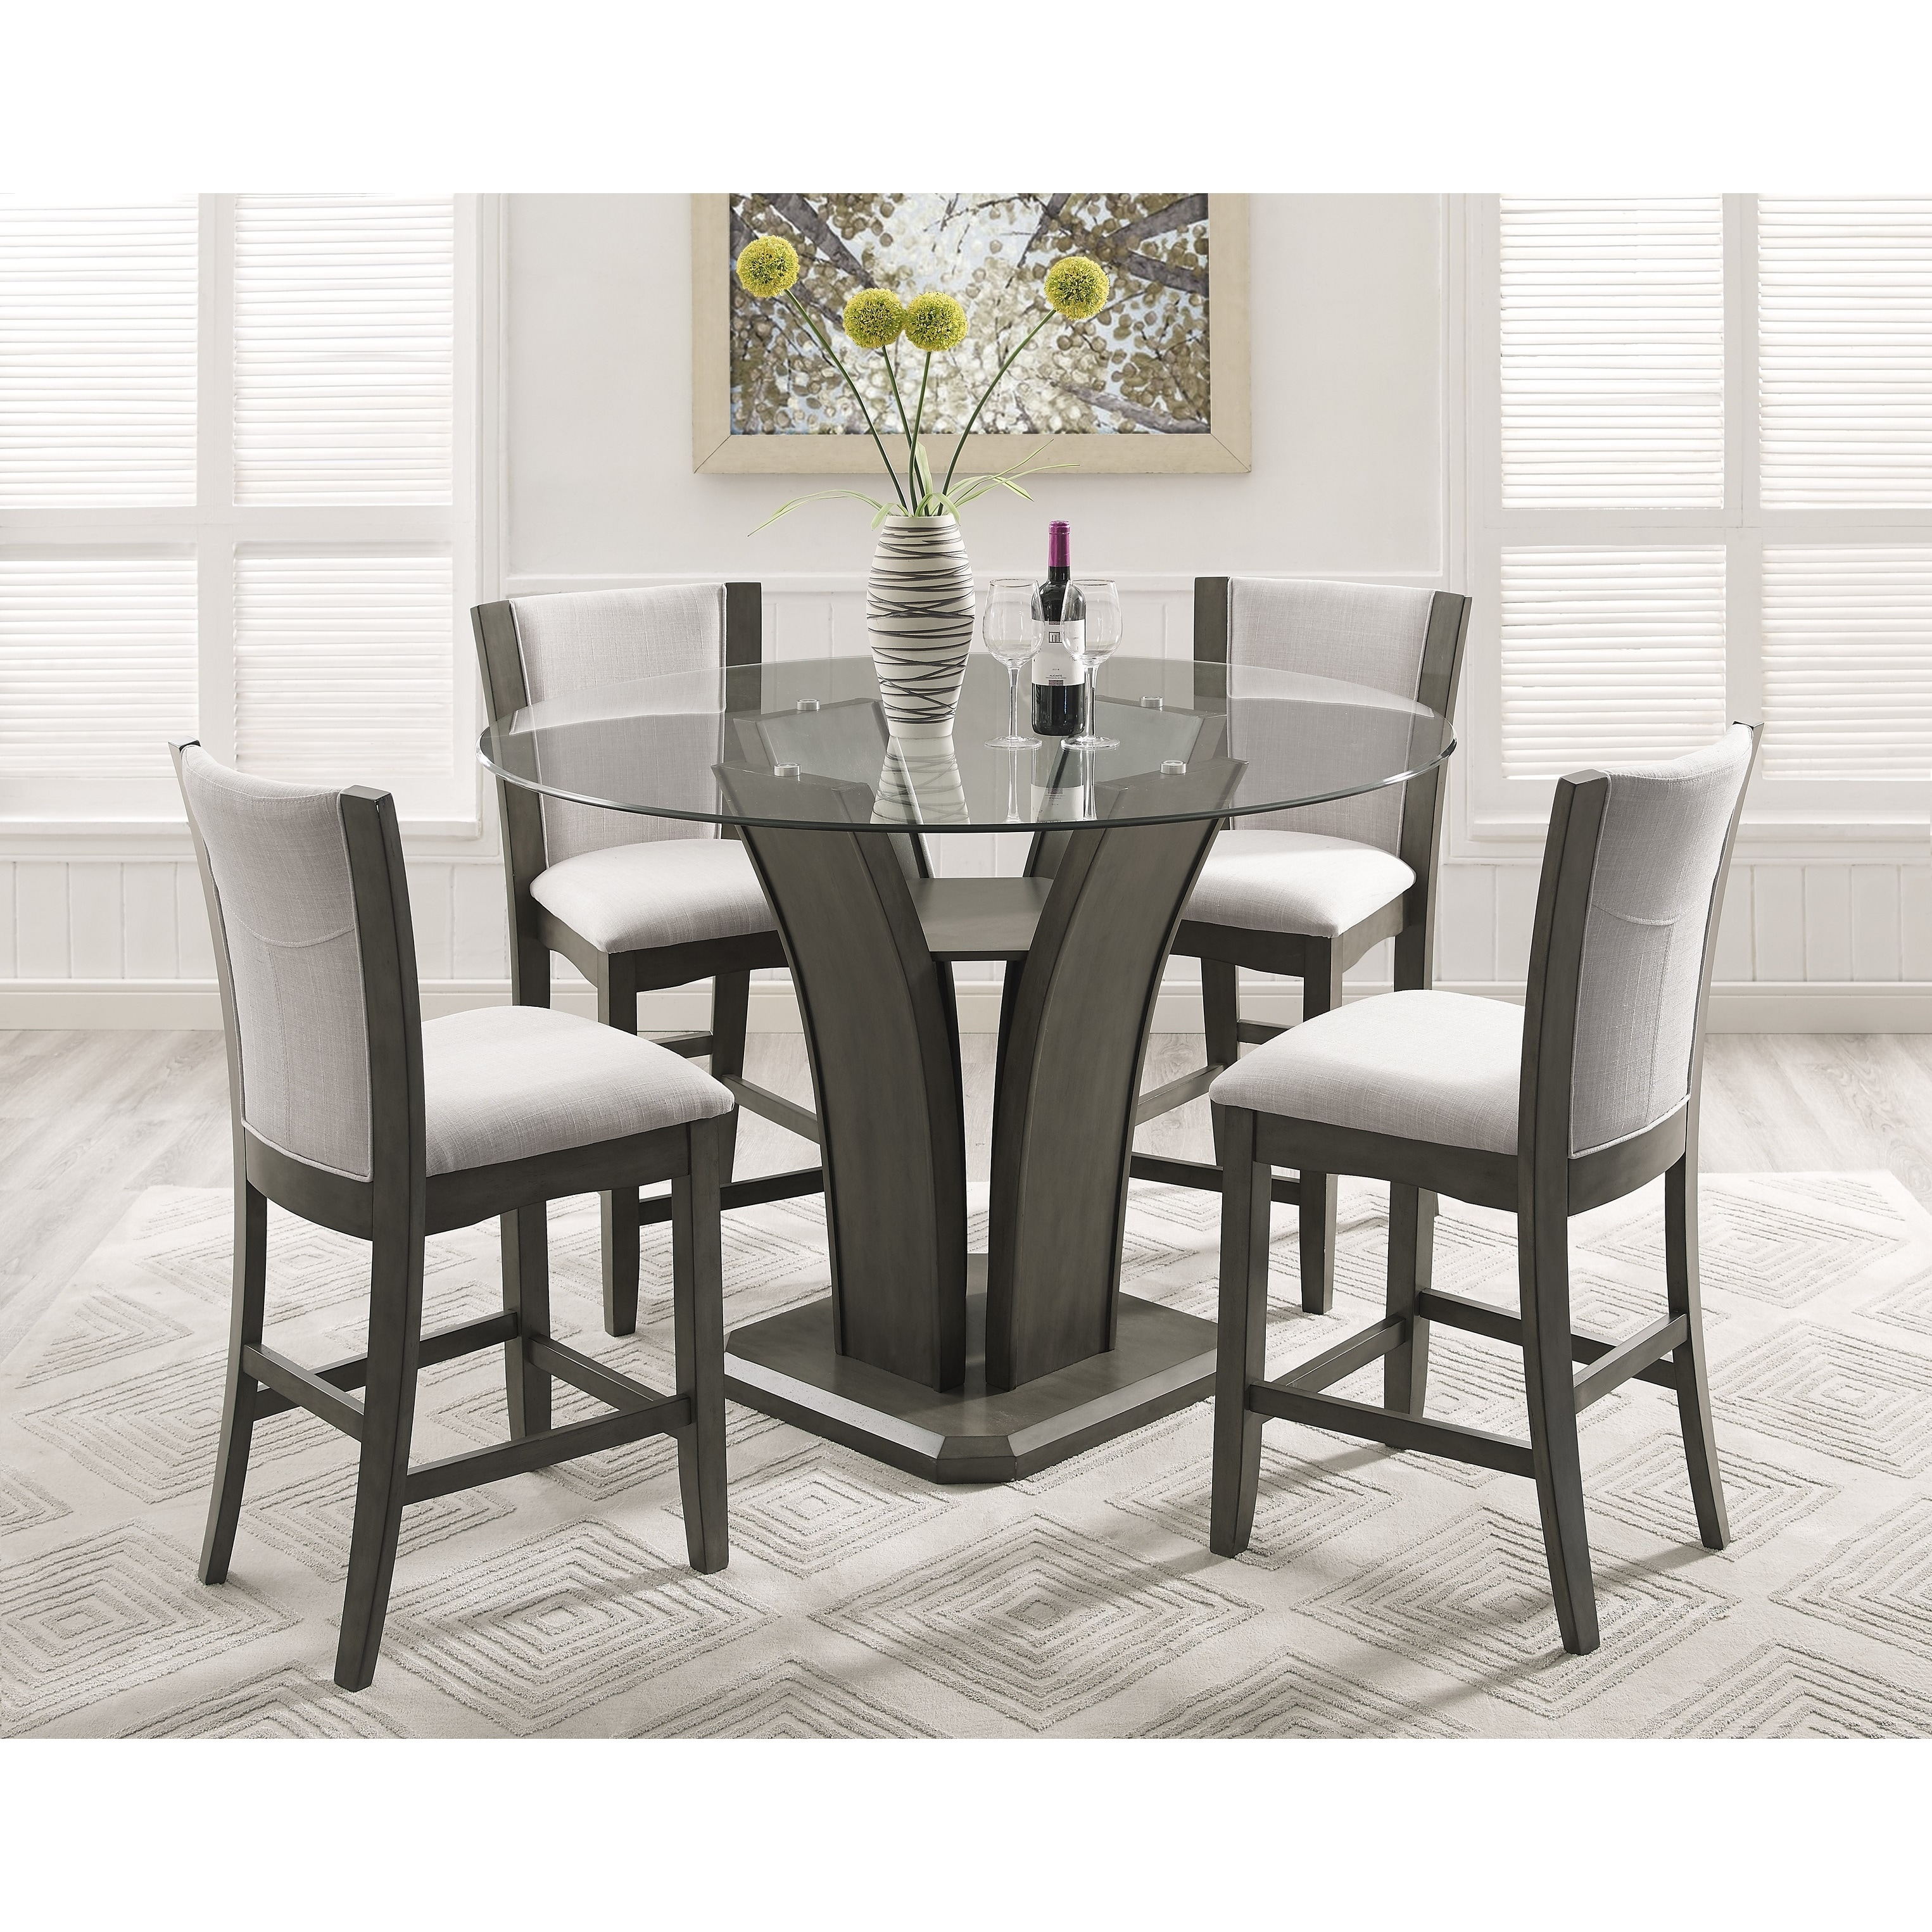 Roundhill Furniture Kecco 5 Piece Round Fabric Counter Height Dining Table Set